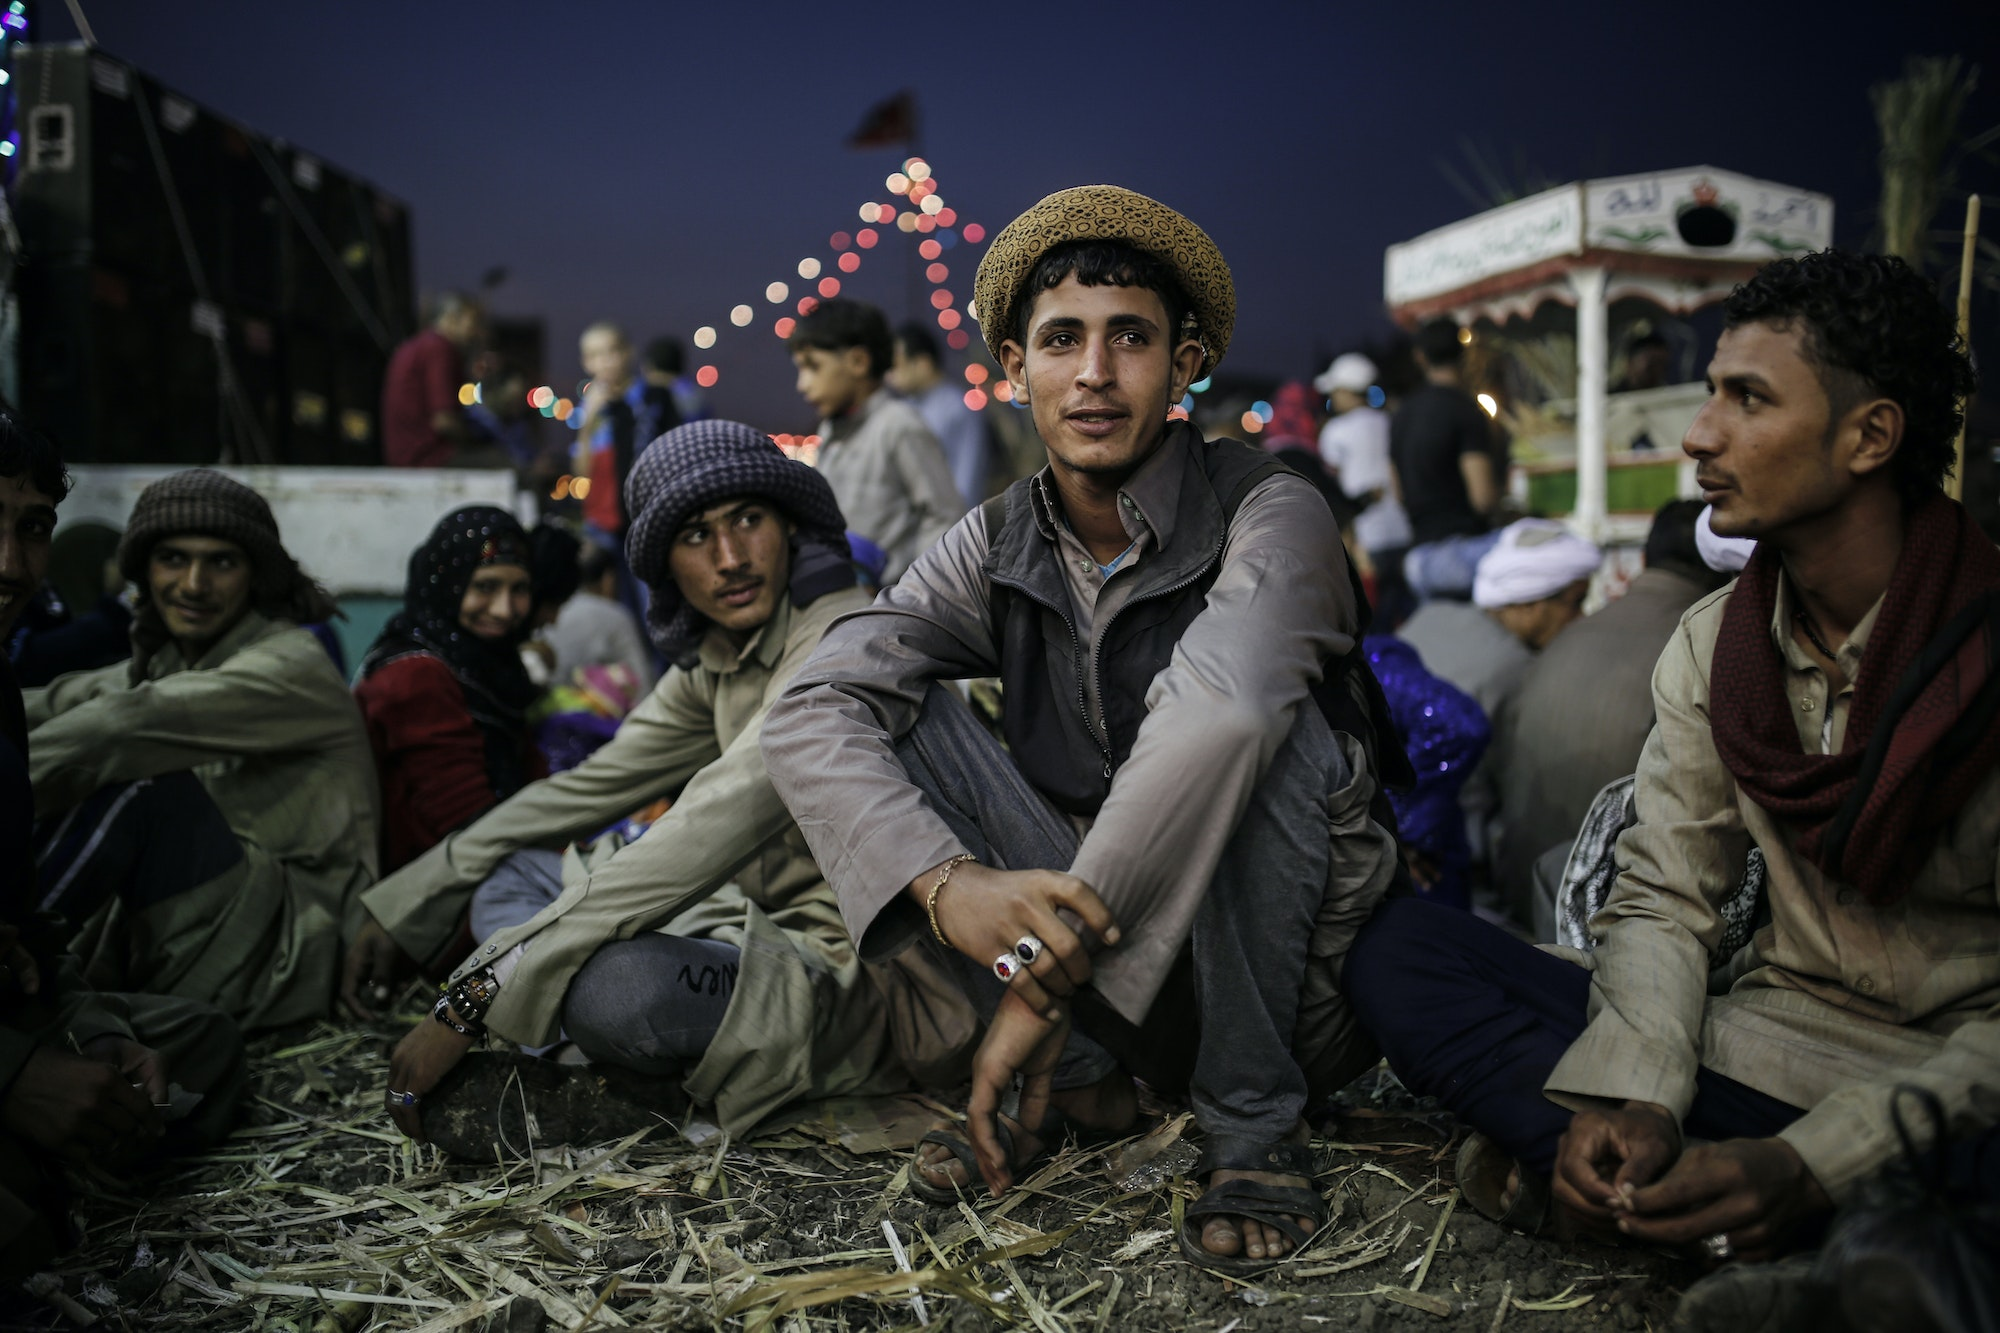 This Is What Everyday Life in the Middle East Actually Looks Like